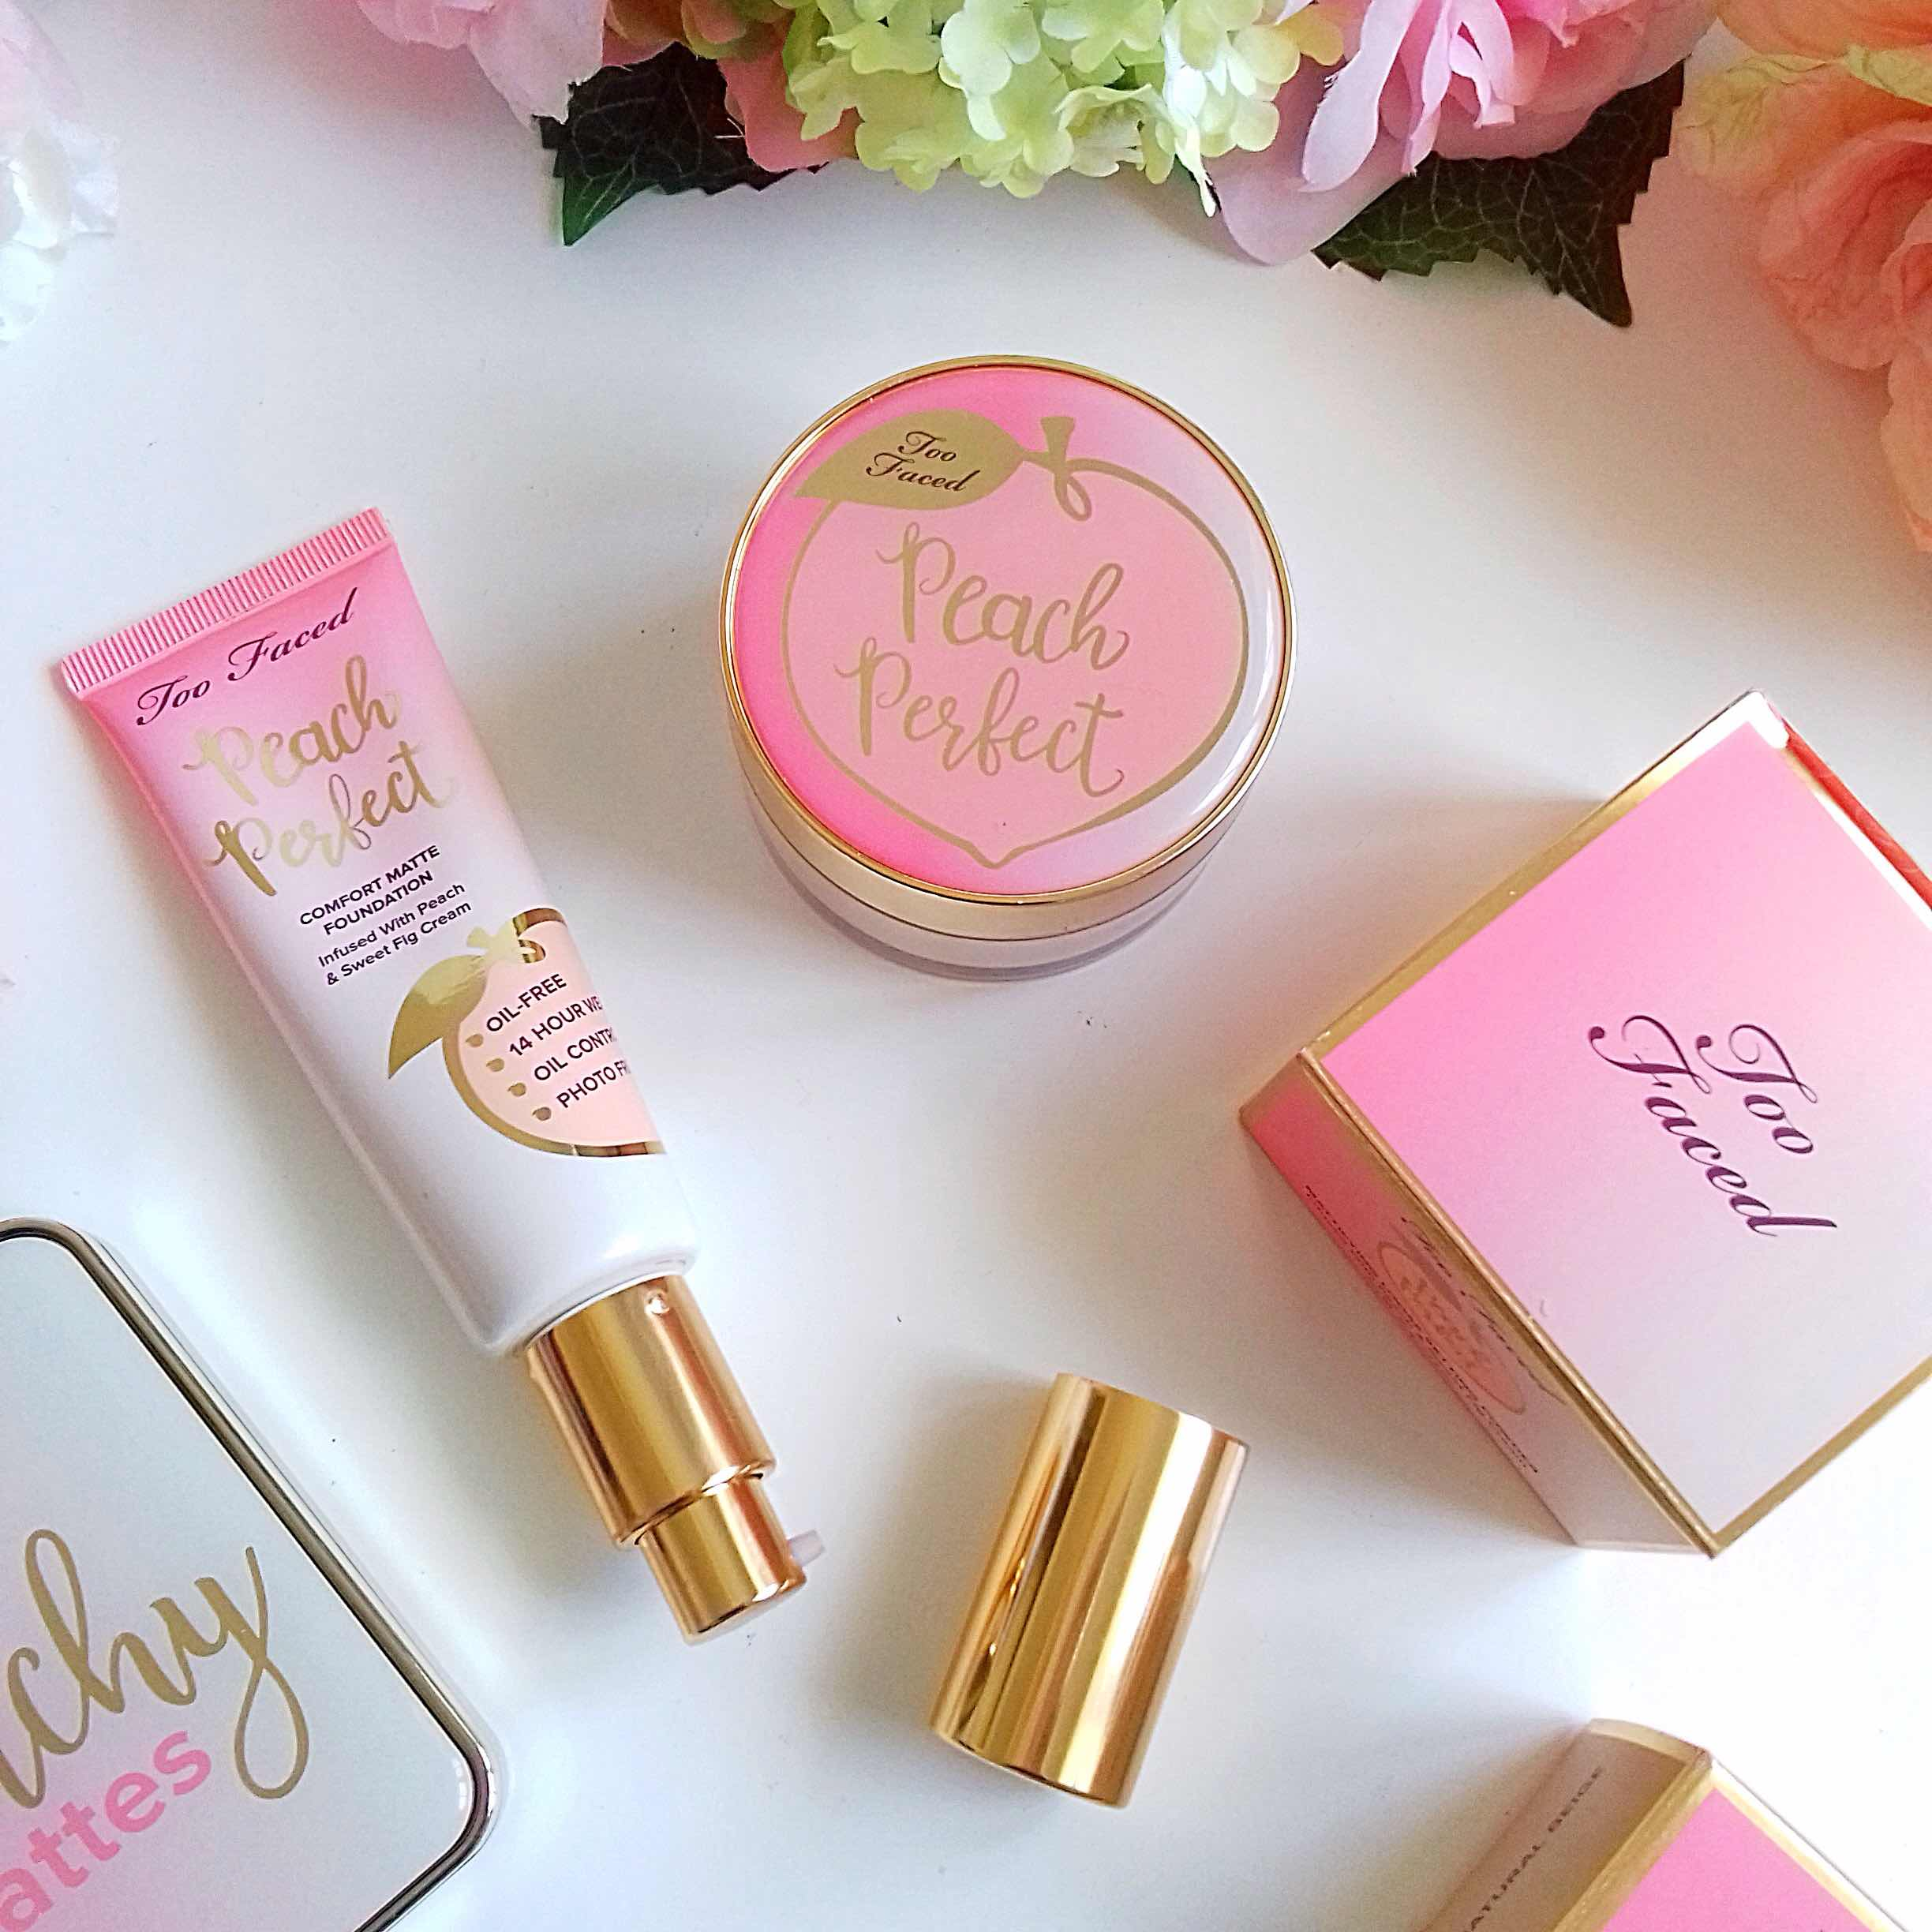 too faced, peach perfect comfort matte foundation, mattifying setting powder, review, makeup